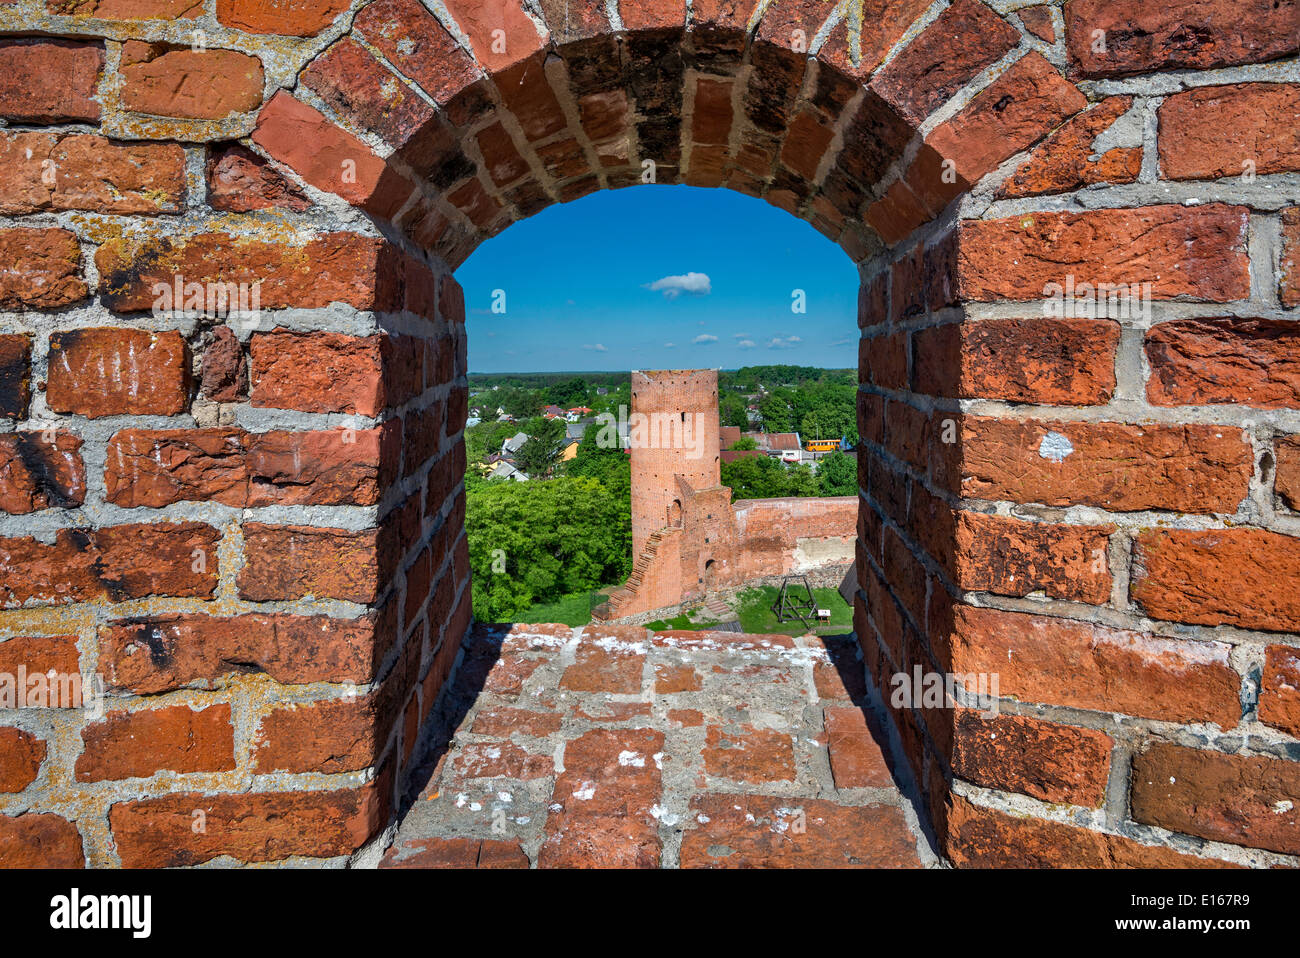 West Tower seen through embrasure at South Tower of medieval Mazovian Princes Castle near village of Czersk, Mazovia, Poland - Stock Image